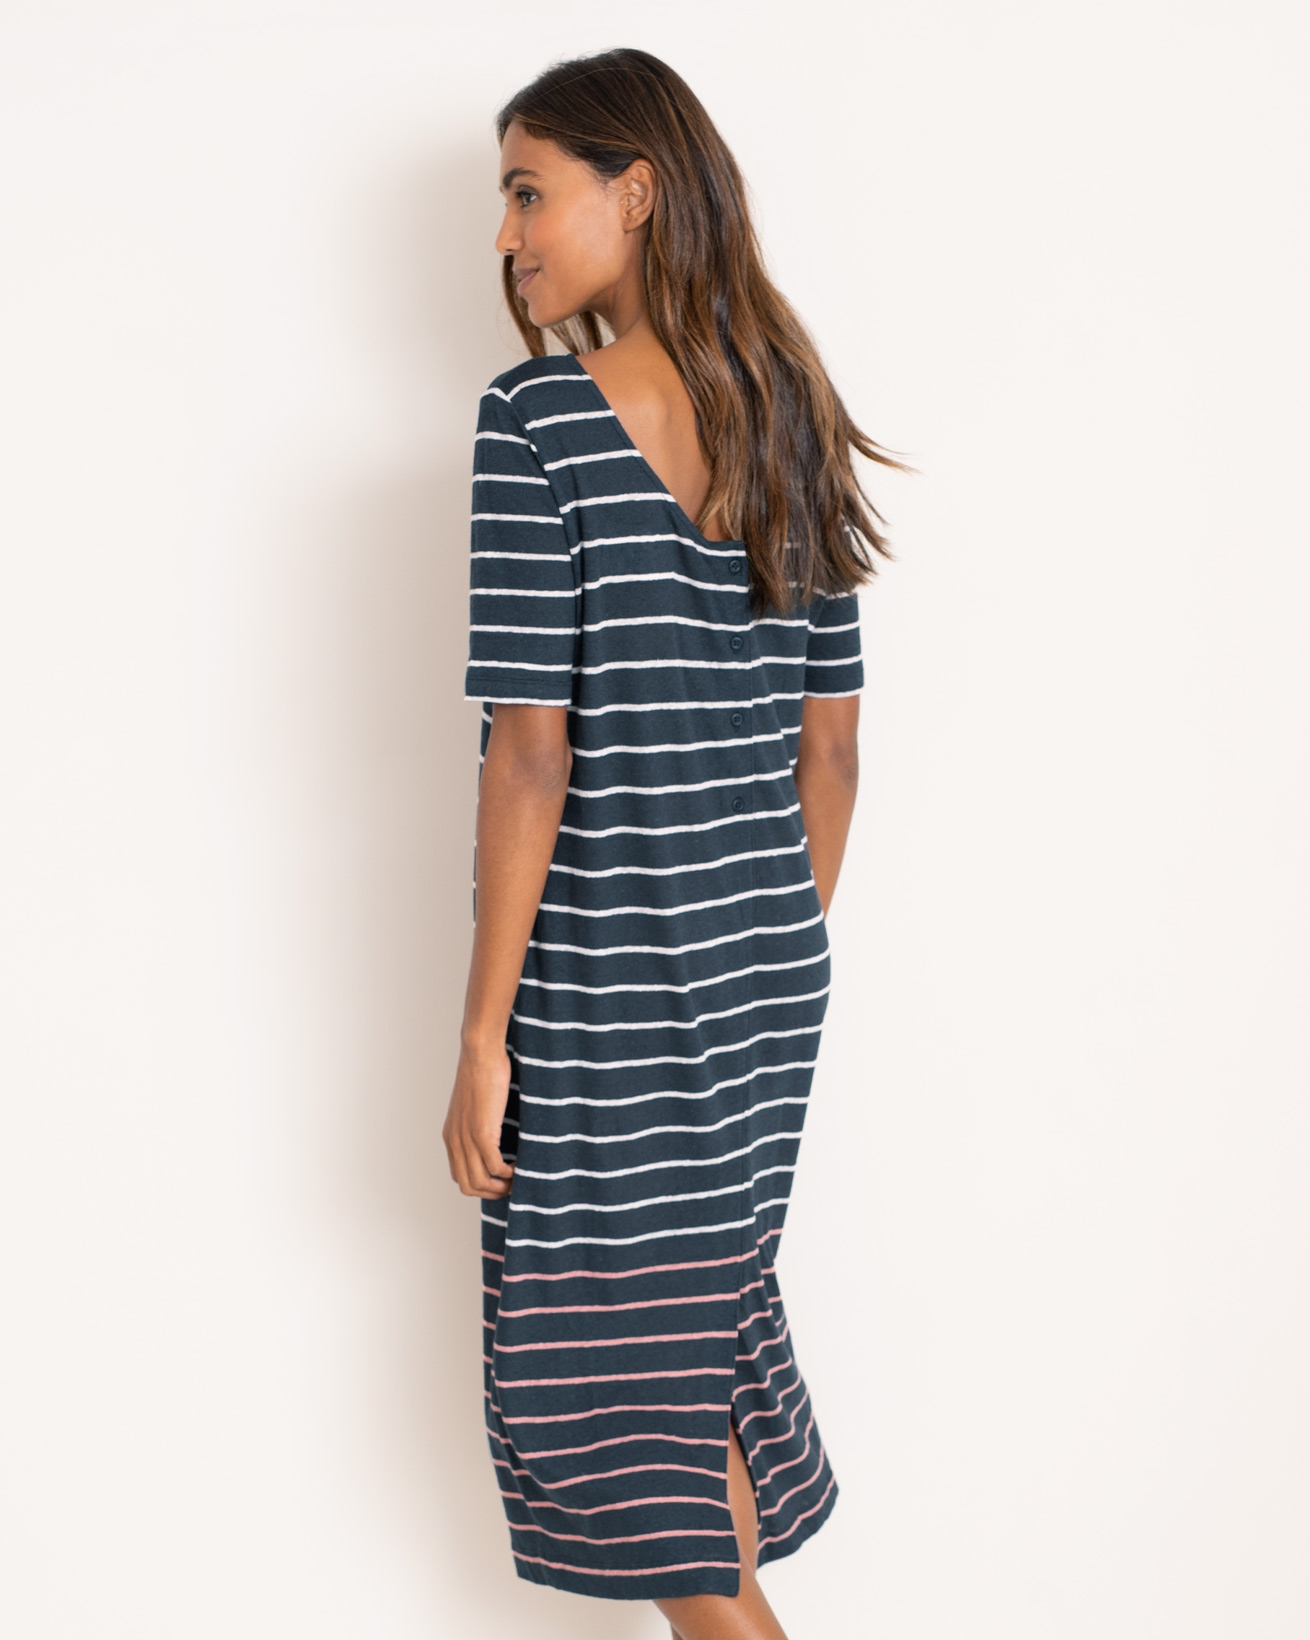 7567-linen-cotton-button-back-dress-navy-blush-stripe-71_lfs.jpg